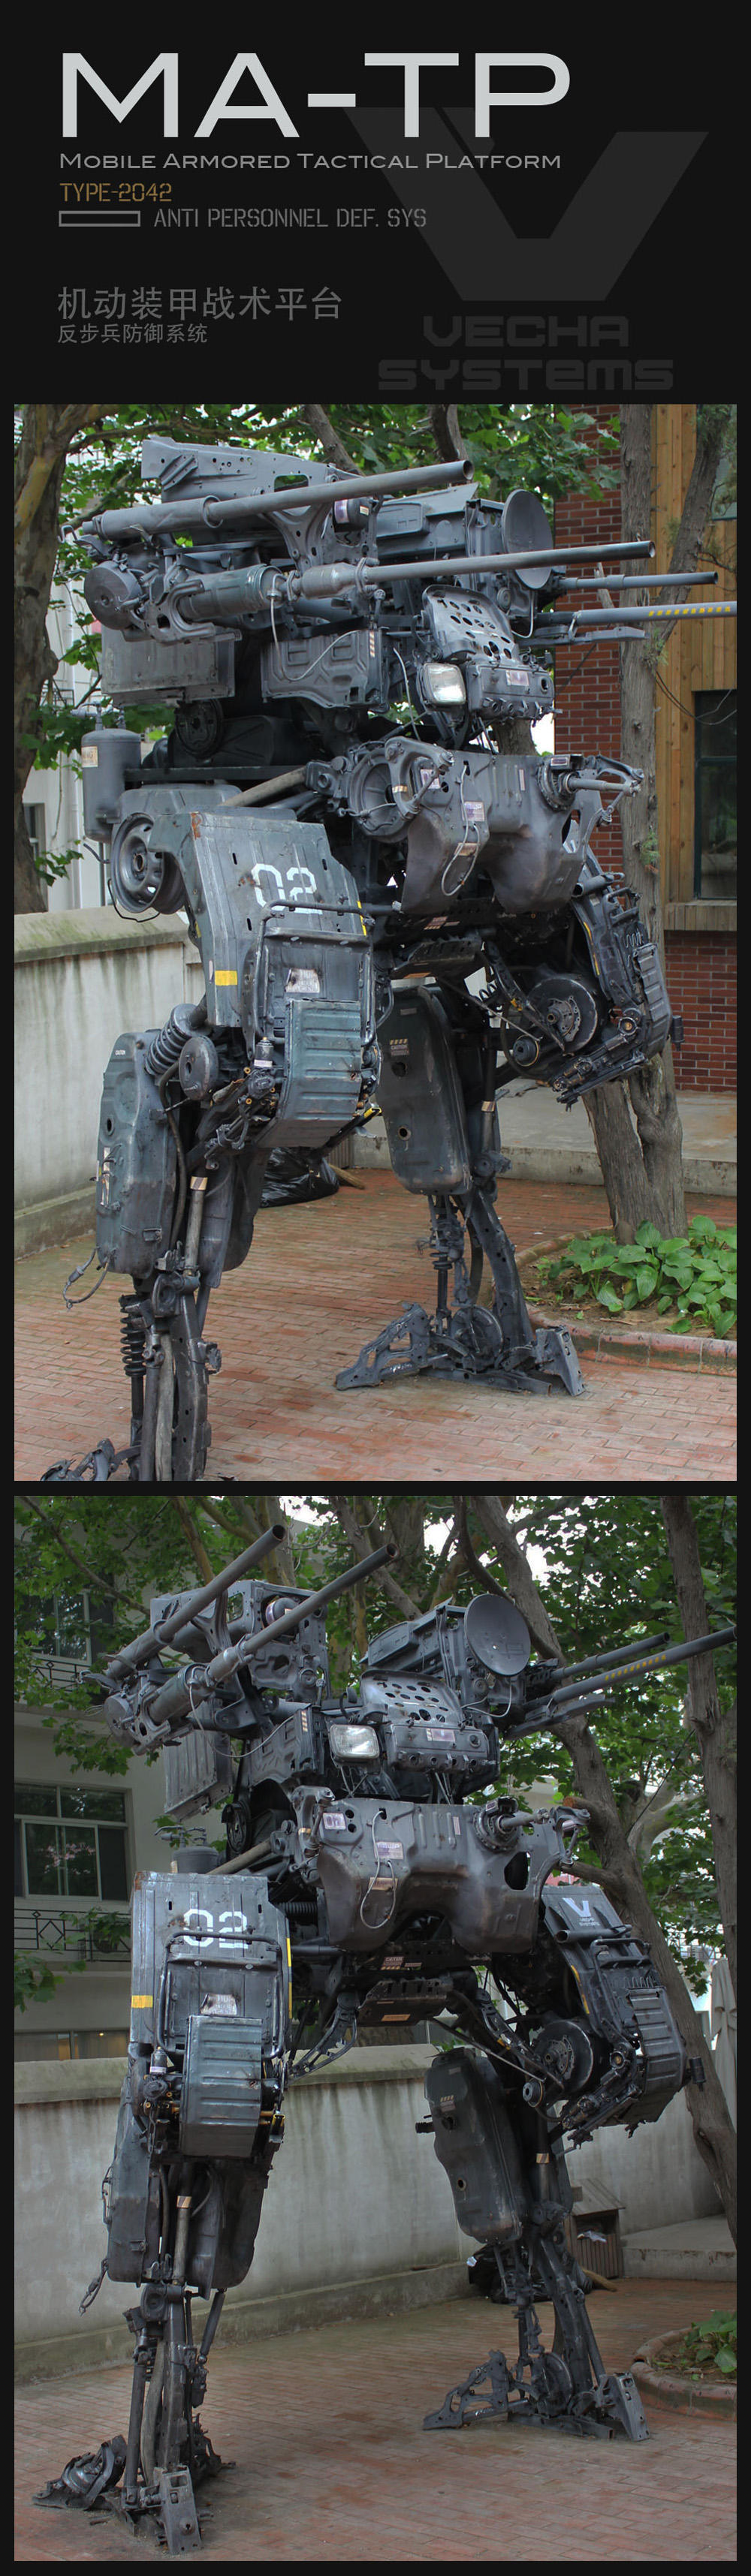 Just a mech by ProgV